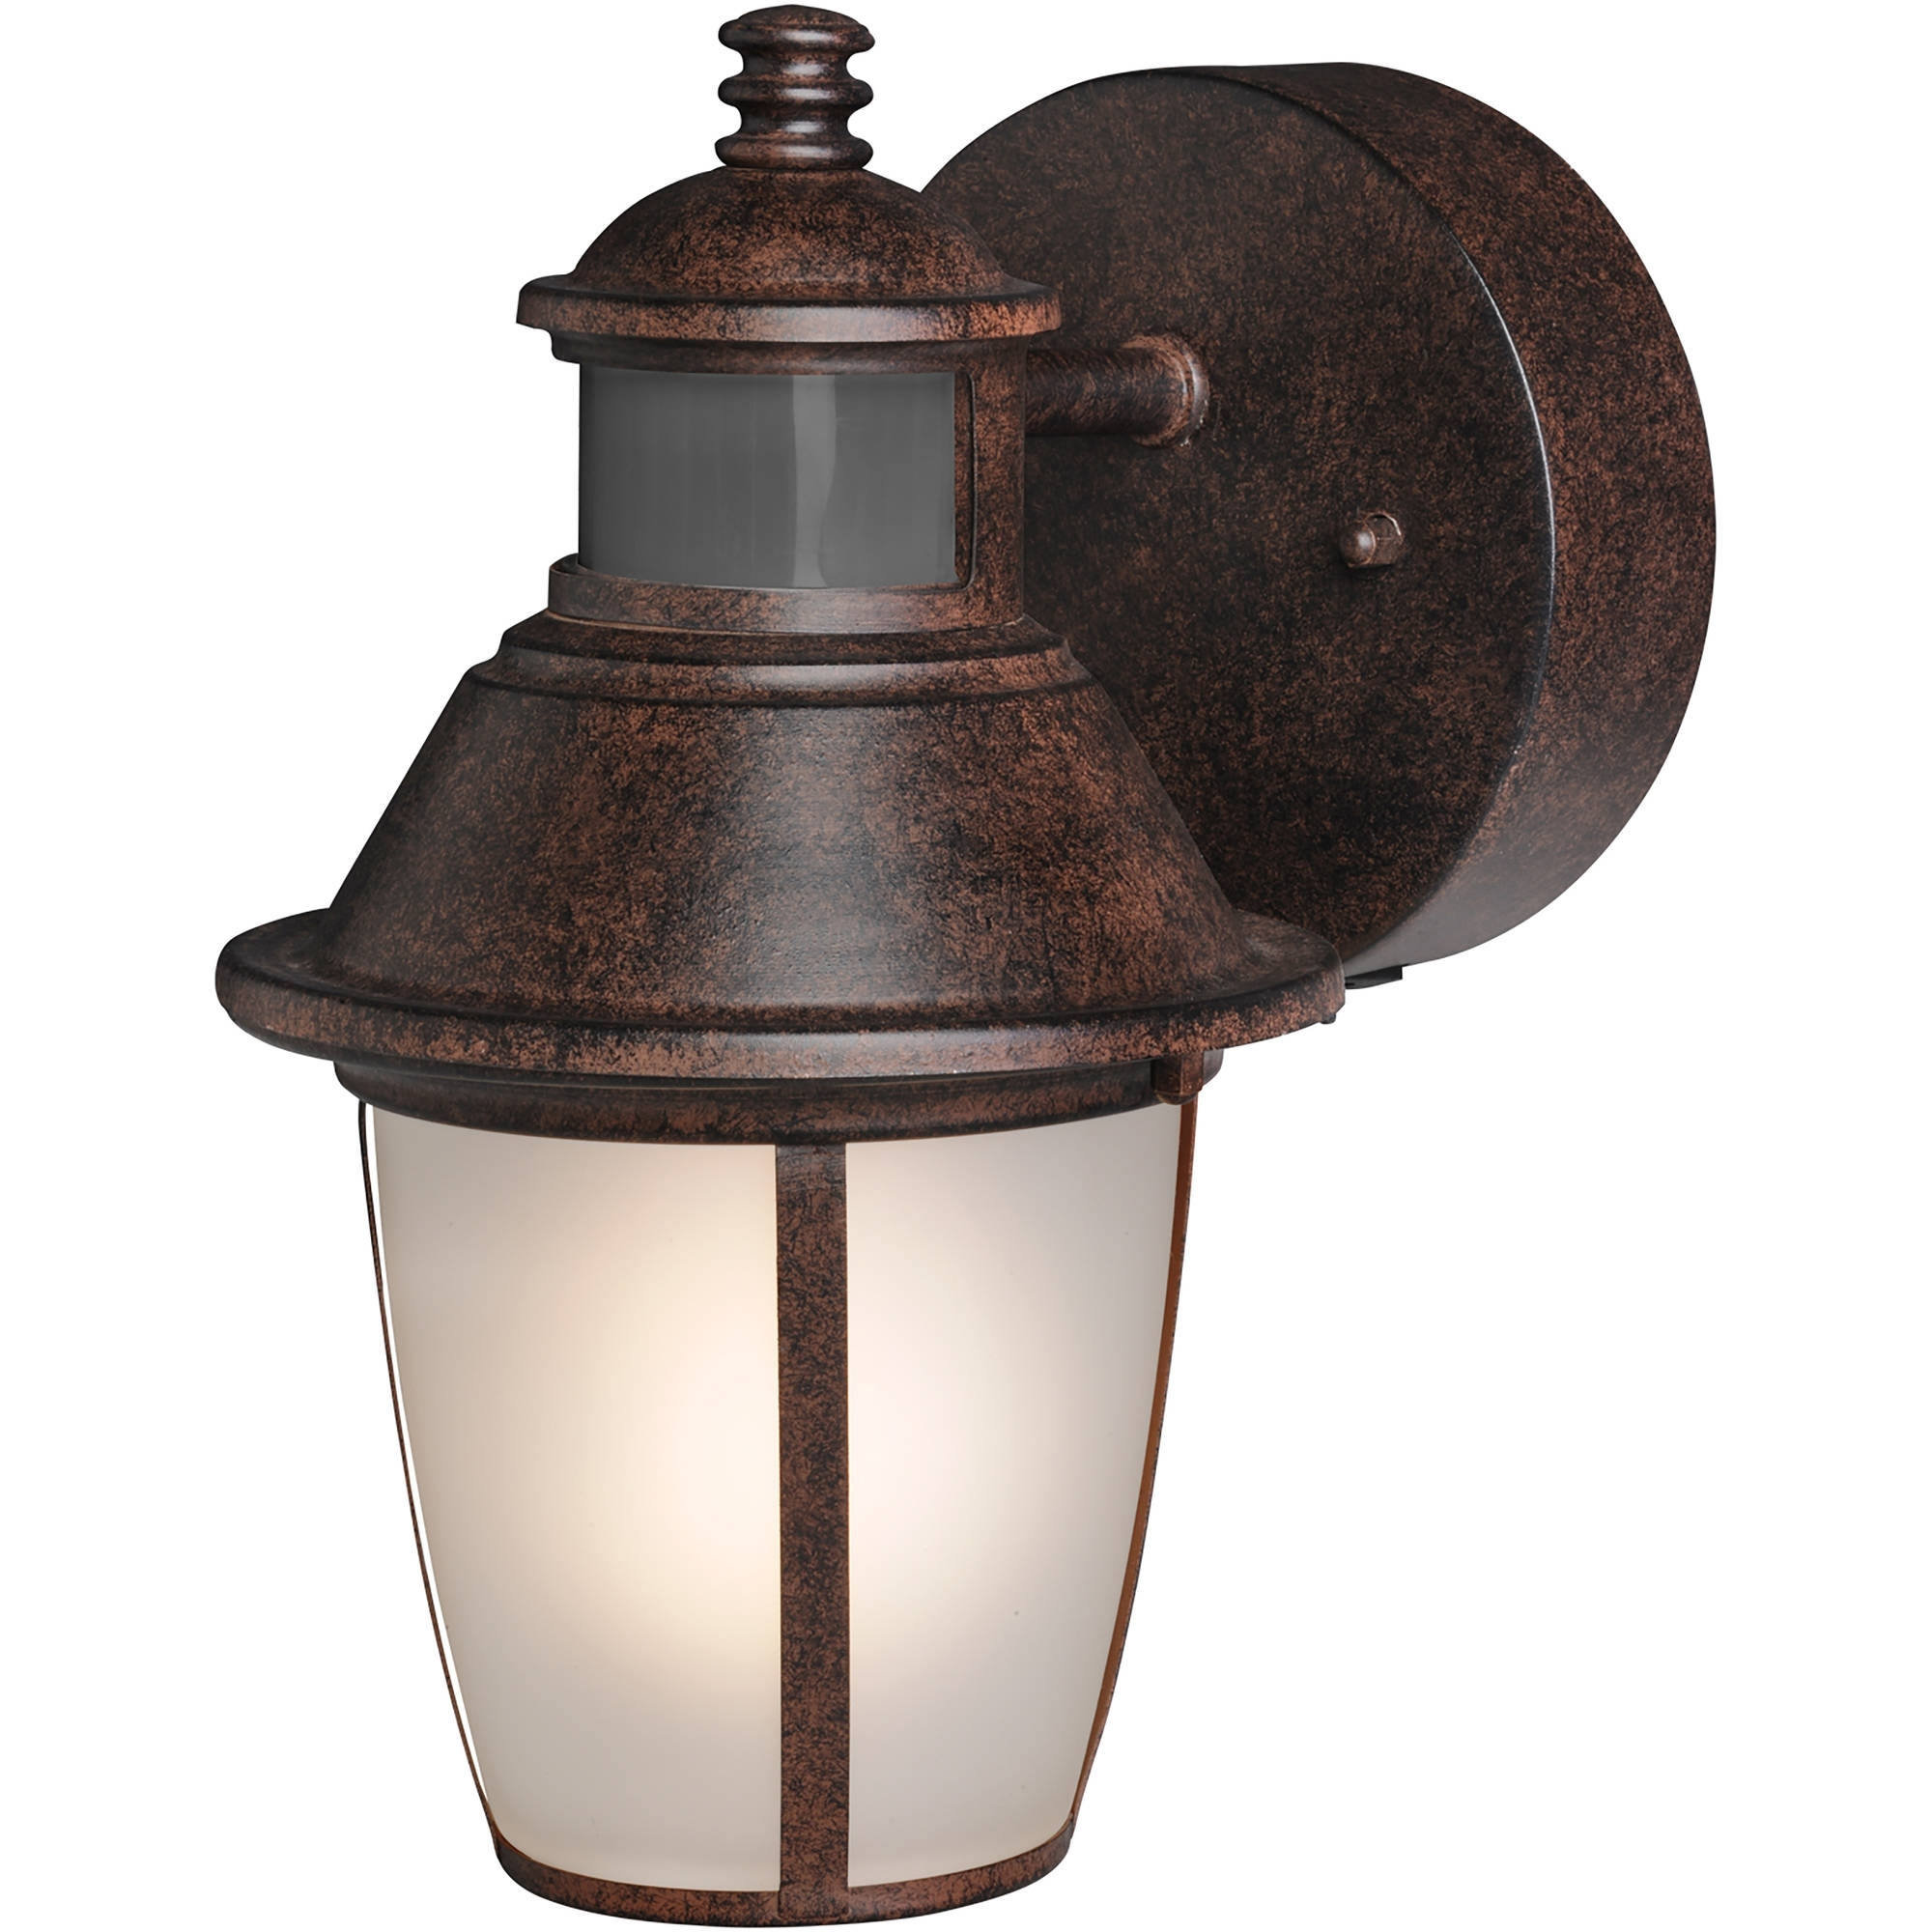 Well Known Outdoor Wall Lighting With Motion Activated Pertaining To Brink's Led Outdoor Wall Lantern Motion Security Light, Bronze (View 20 of 20)